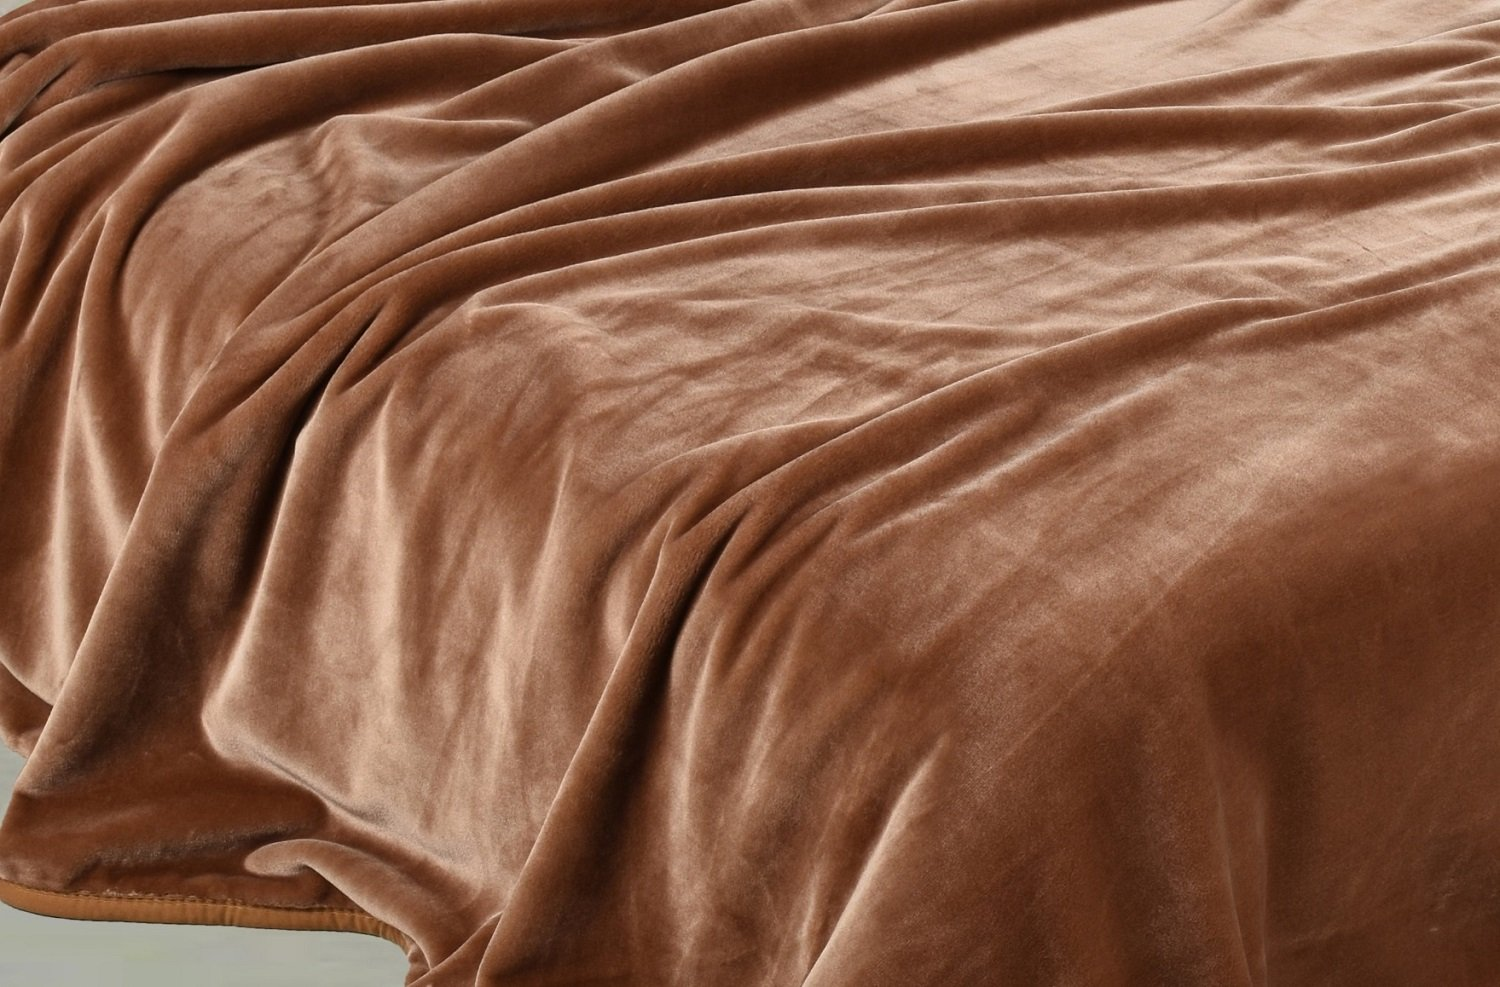 "Chezmoi Collection Heavy Thick One Ply Korean Style Faux Mink Blanket 9-Pound Oversized King 105x92"" (King, Coffee)"